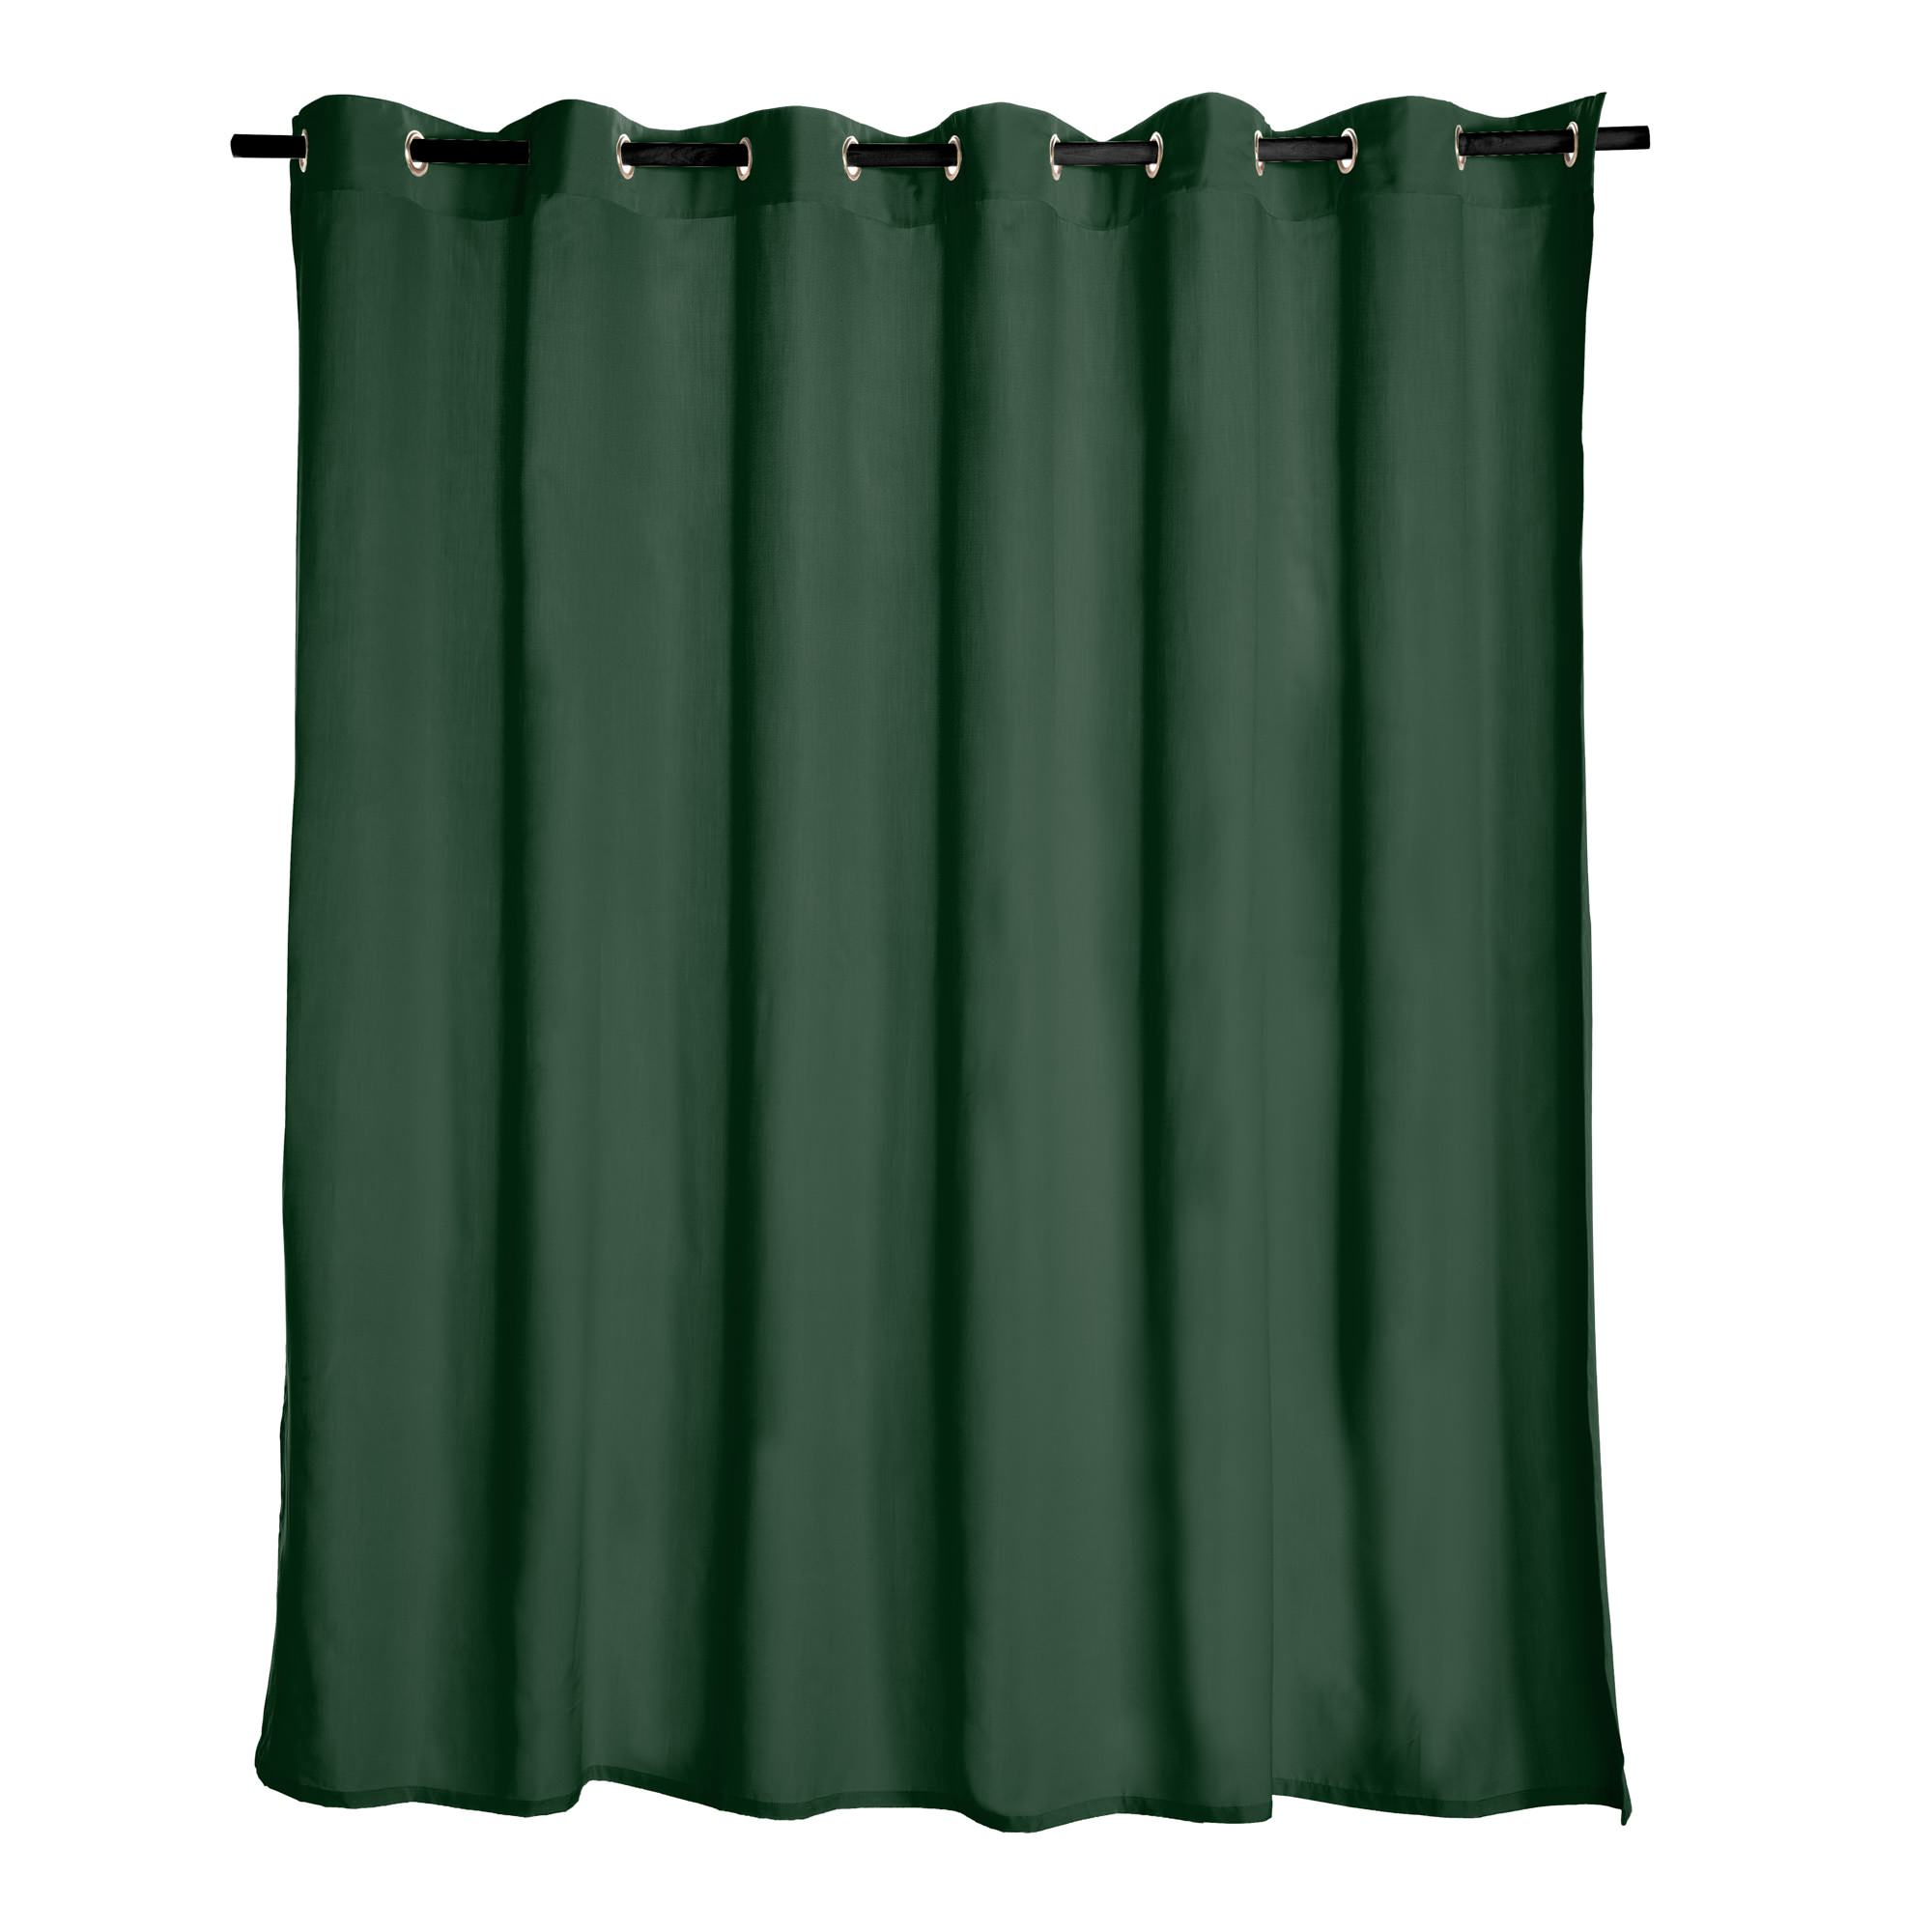 with org design ideas panels curtains extra grommets best curtain thermal for photos wide intended stunning home avarii